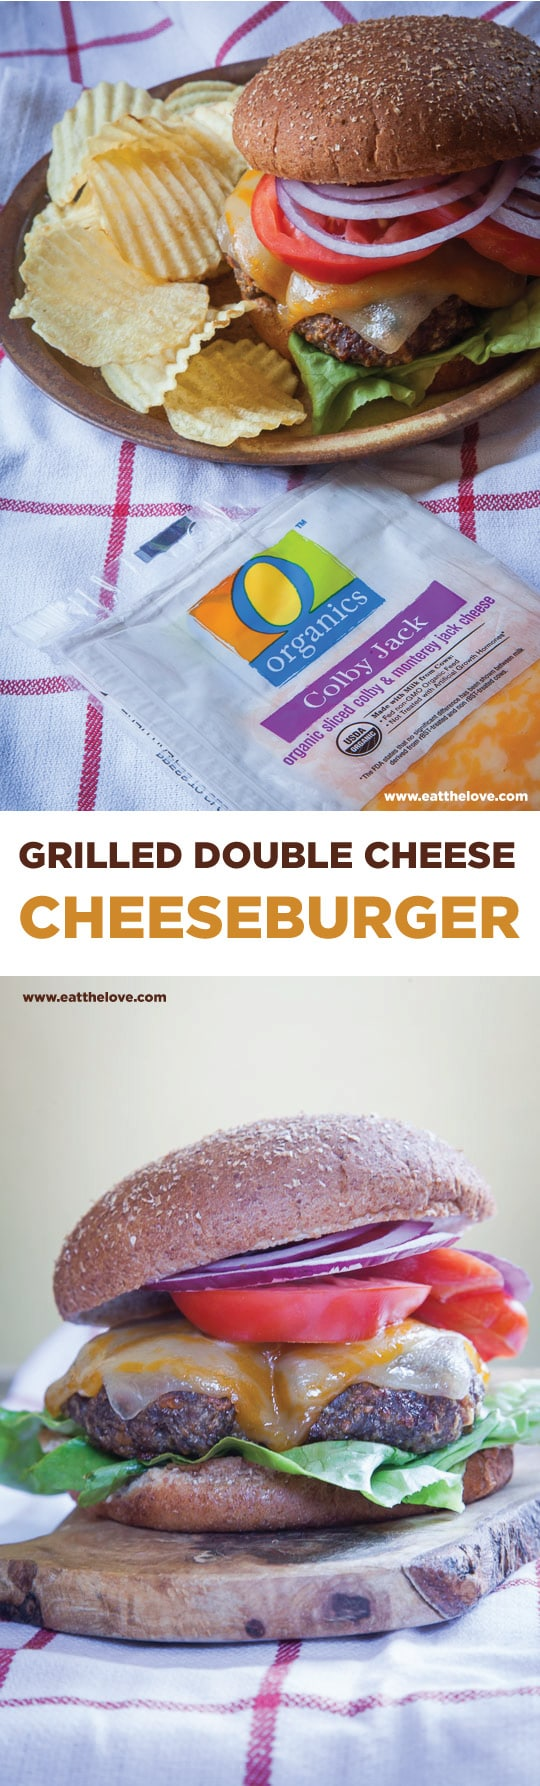 Grilled Double Cheese Cheeseburgers. Photo and recipe by Irvin Lin of Eat the Love.